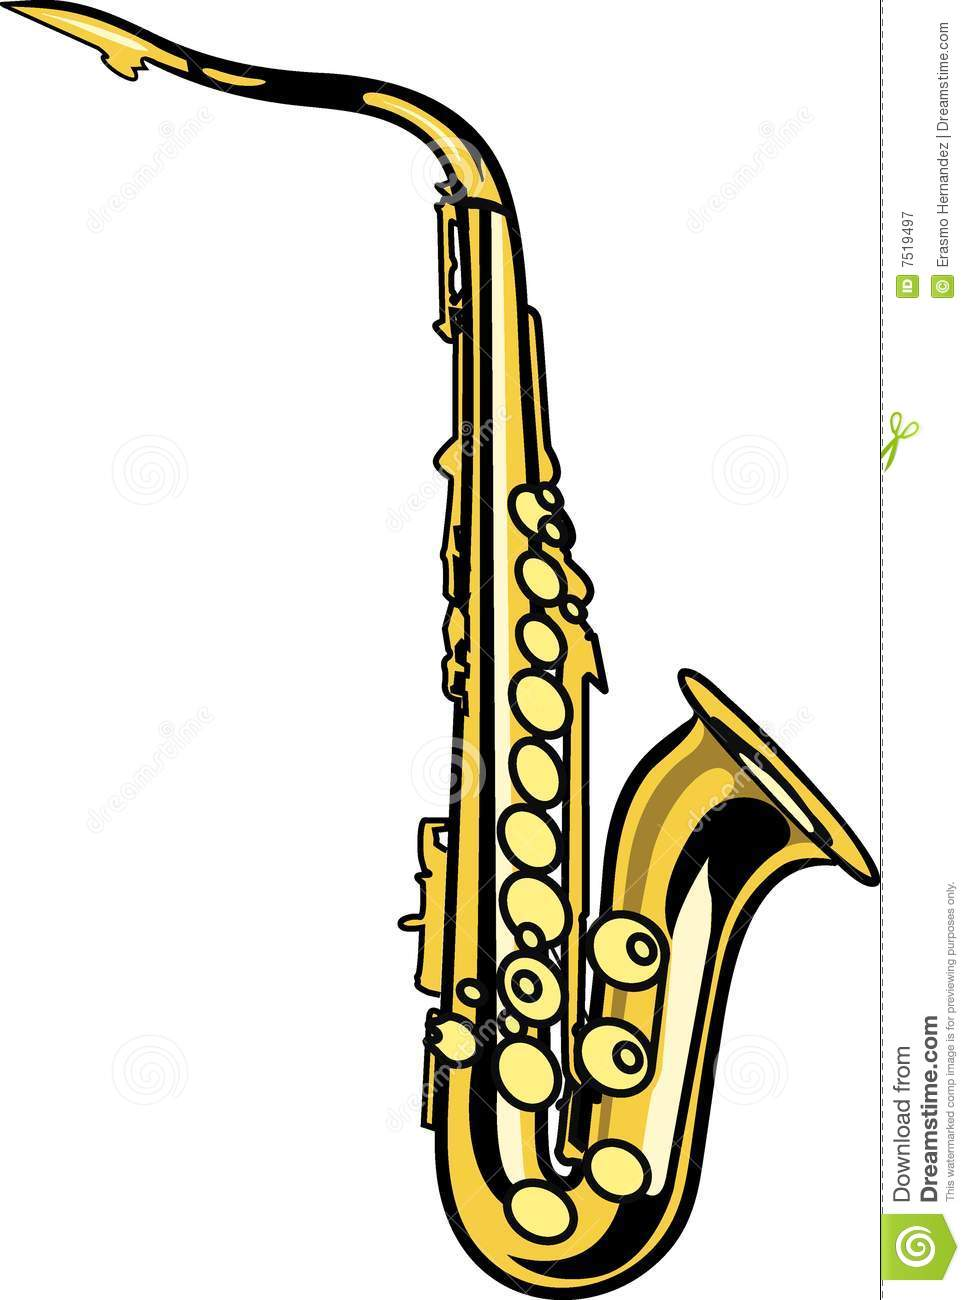 alto saxophone silhouette at getdrawings com free for personal use rh getdrawings com alto saxophone clipart saxophone pictures clip art